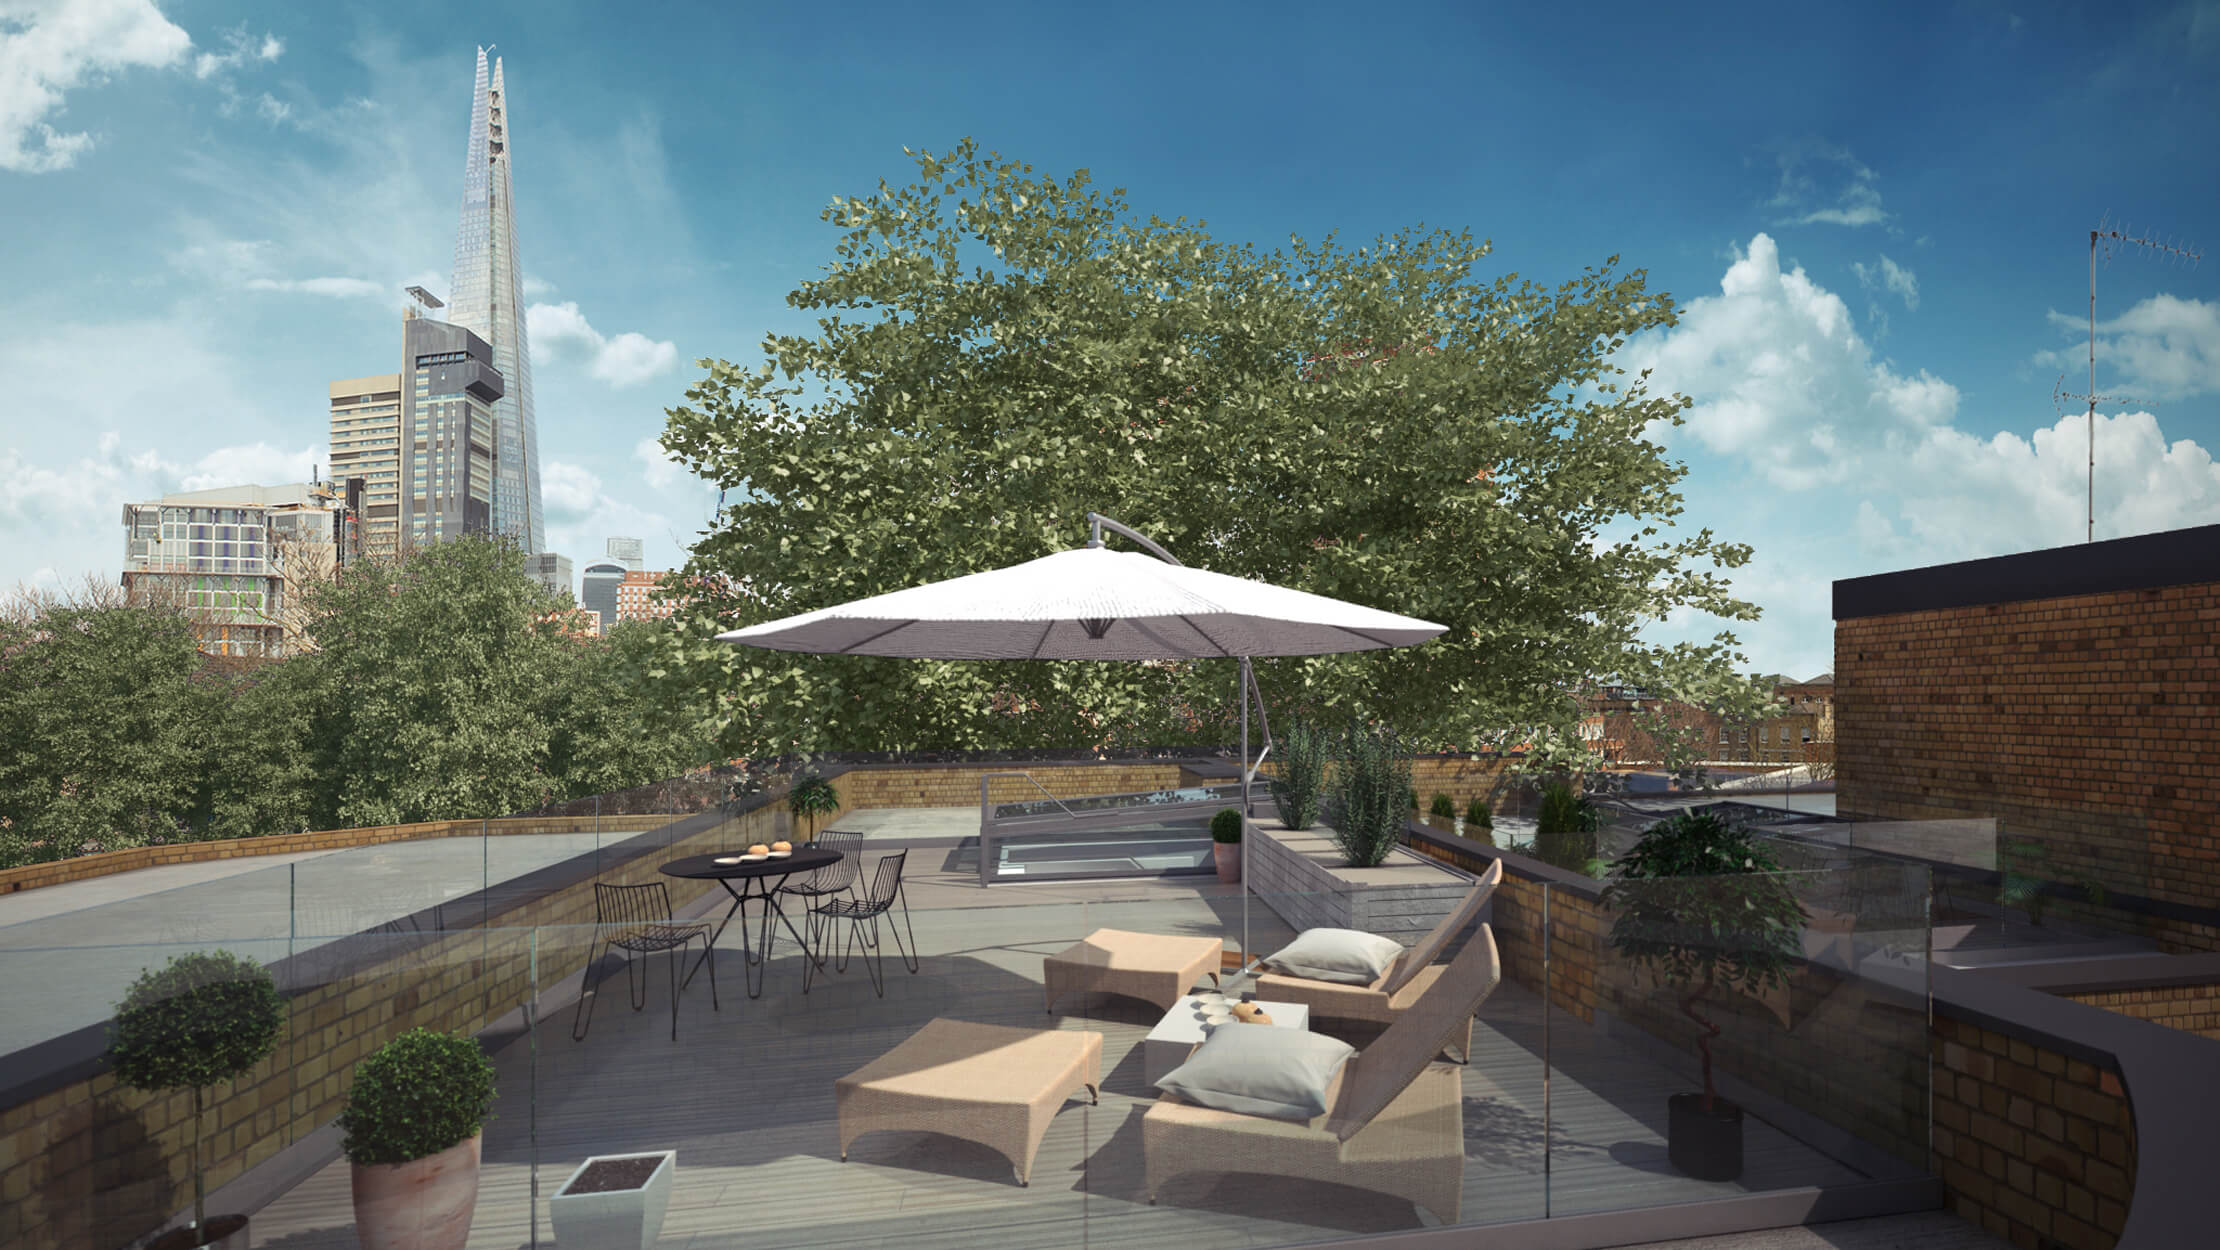 Roof terrace at Hepple & White, computer generated image intended for illustrative purposes only, ©Acorn Property Group.